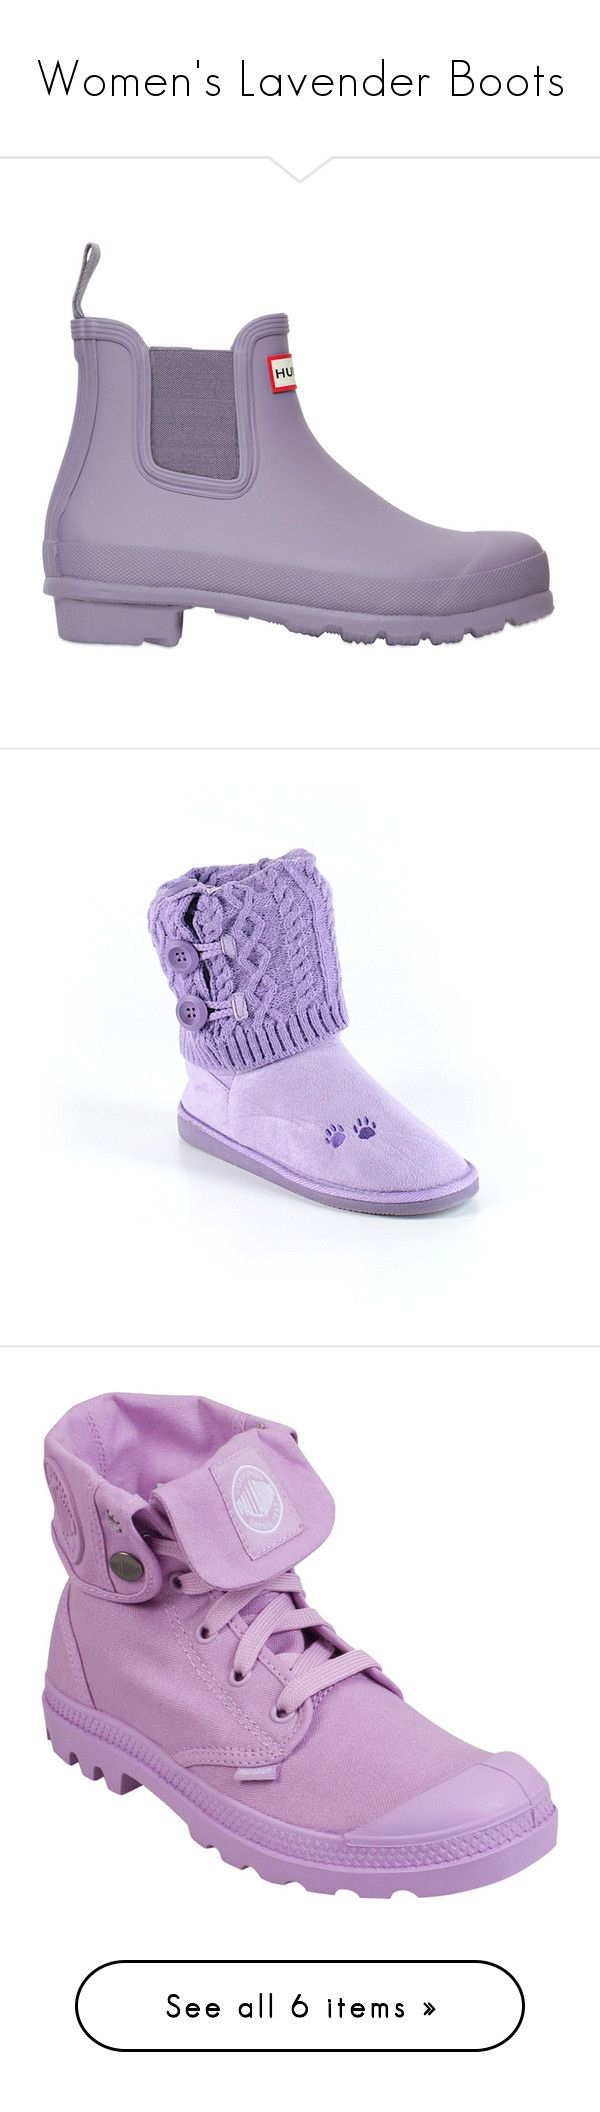 """Women's Lavender Boots"" by eternalfeatherfilm on Polyvore featuring shoes, boots, lilla, hunter shoes, elastic shoes, rubber boots, hunter footwear, wellington boots, purple and animal boots"